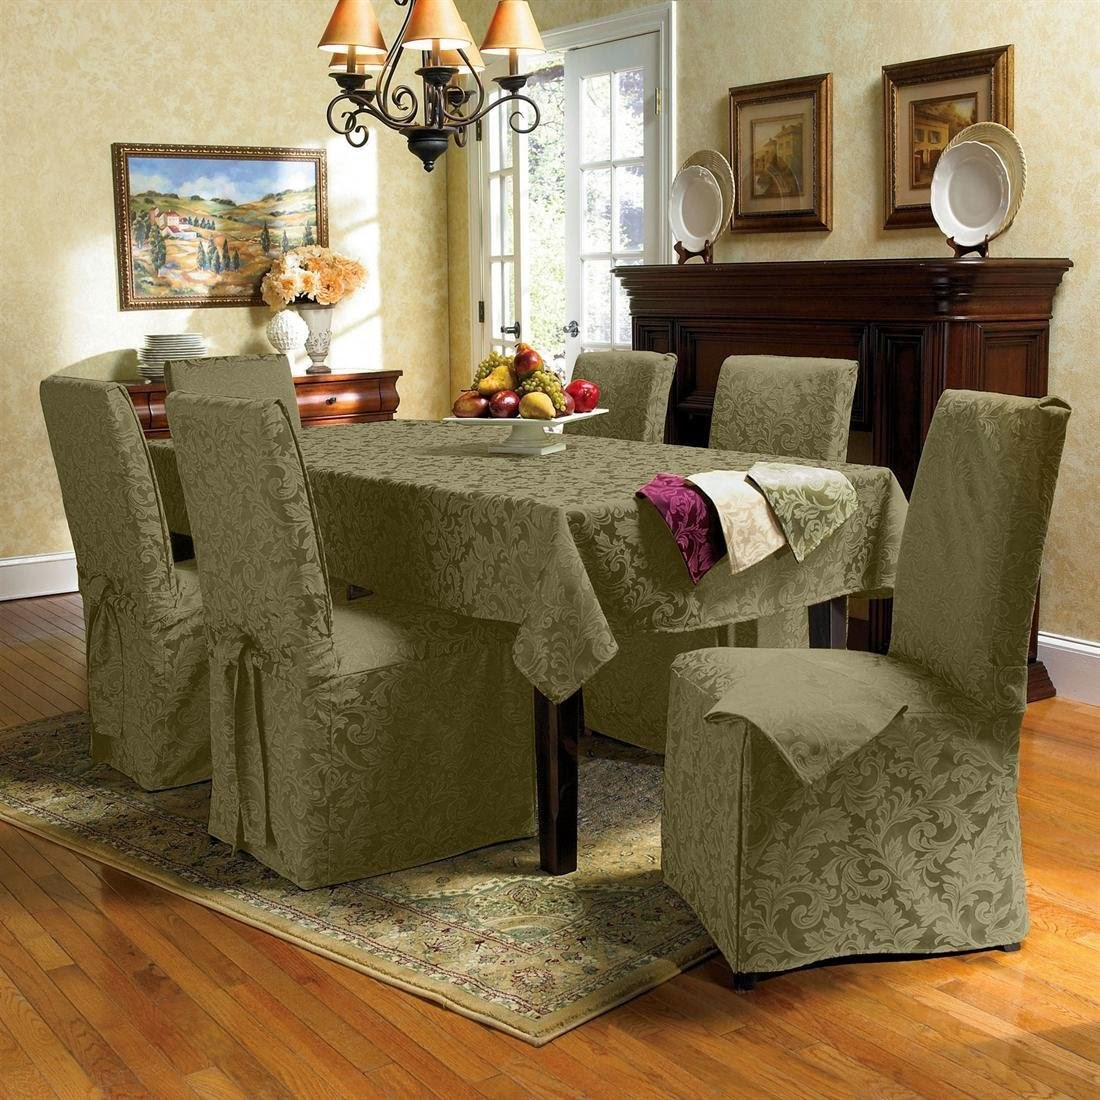 Fabric Dining Room Chair Covers Chair Covers Design With Minimalis Dining Room Chair Seat Covers